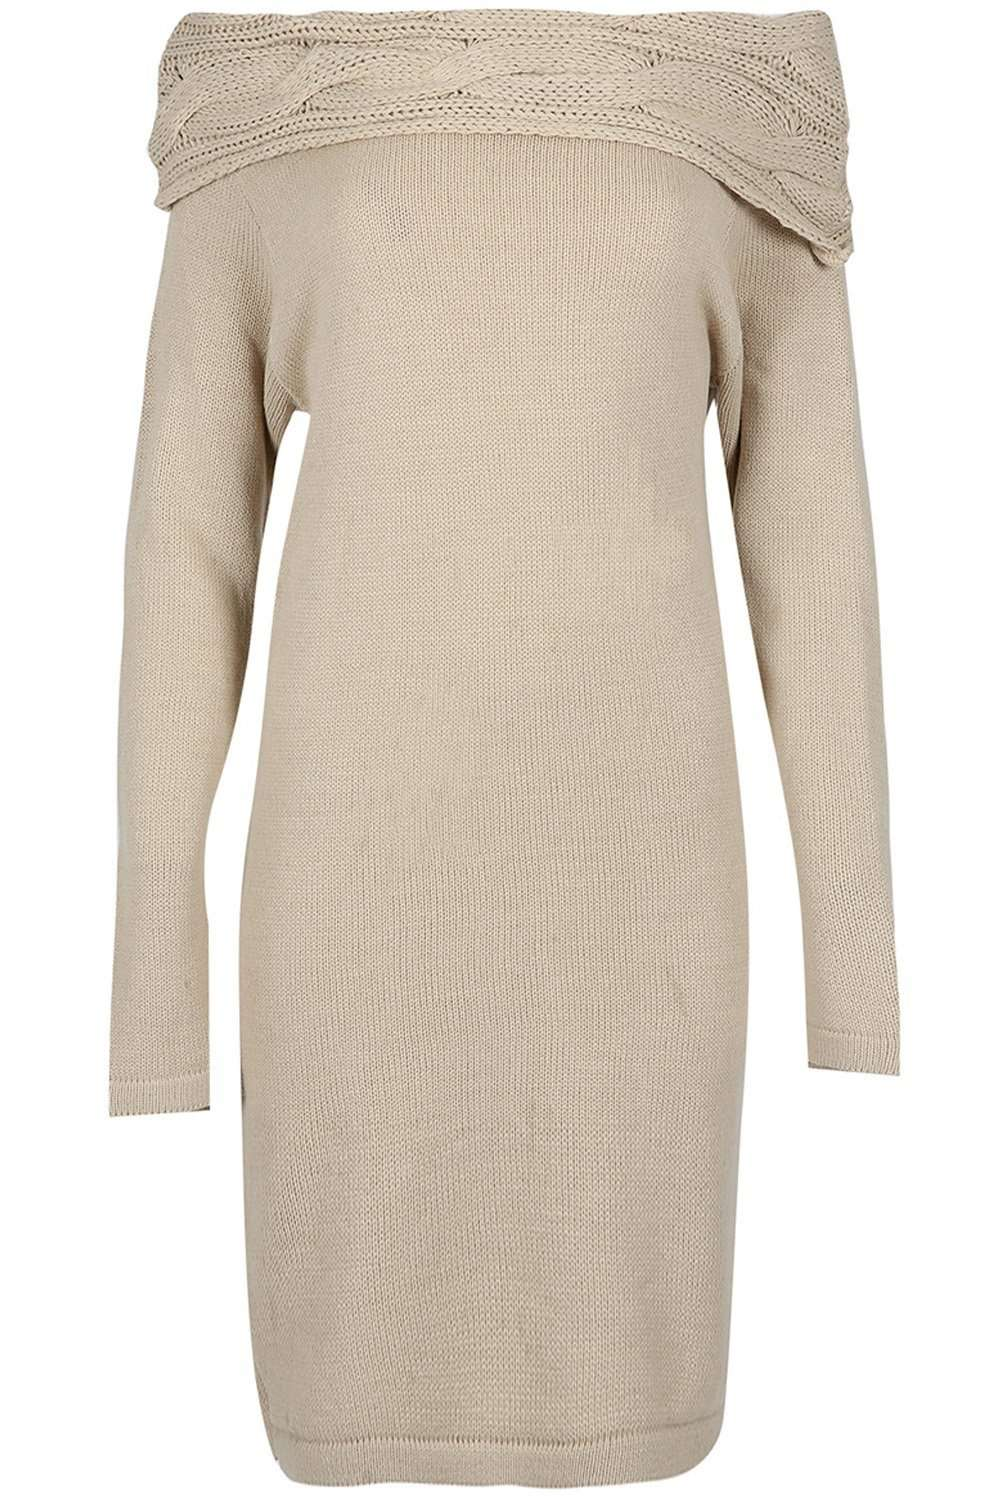 Off Shoulder Beige Knitted Jumper Dress - bejealous-com